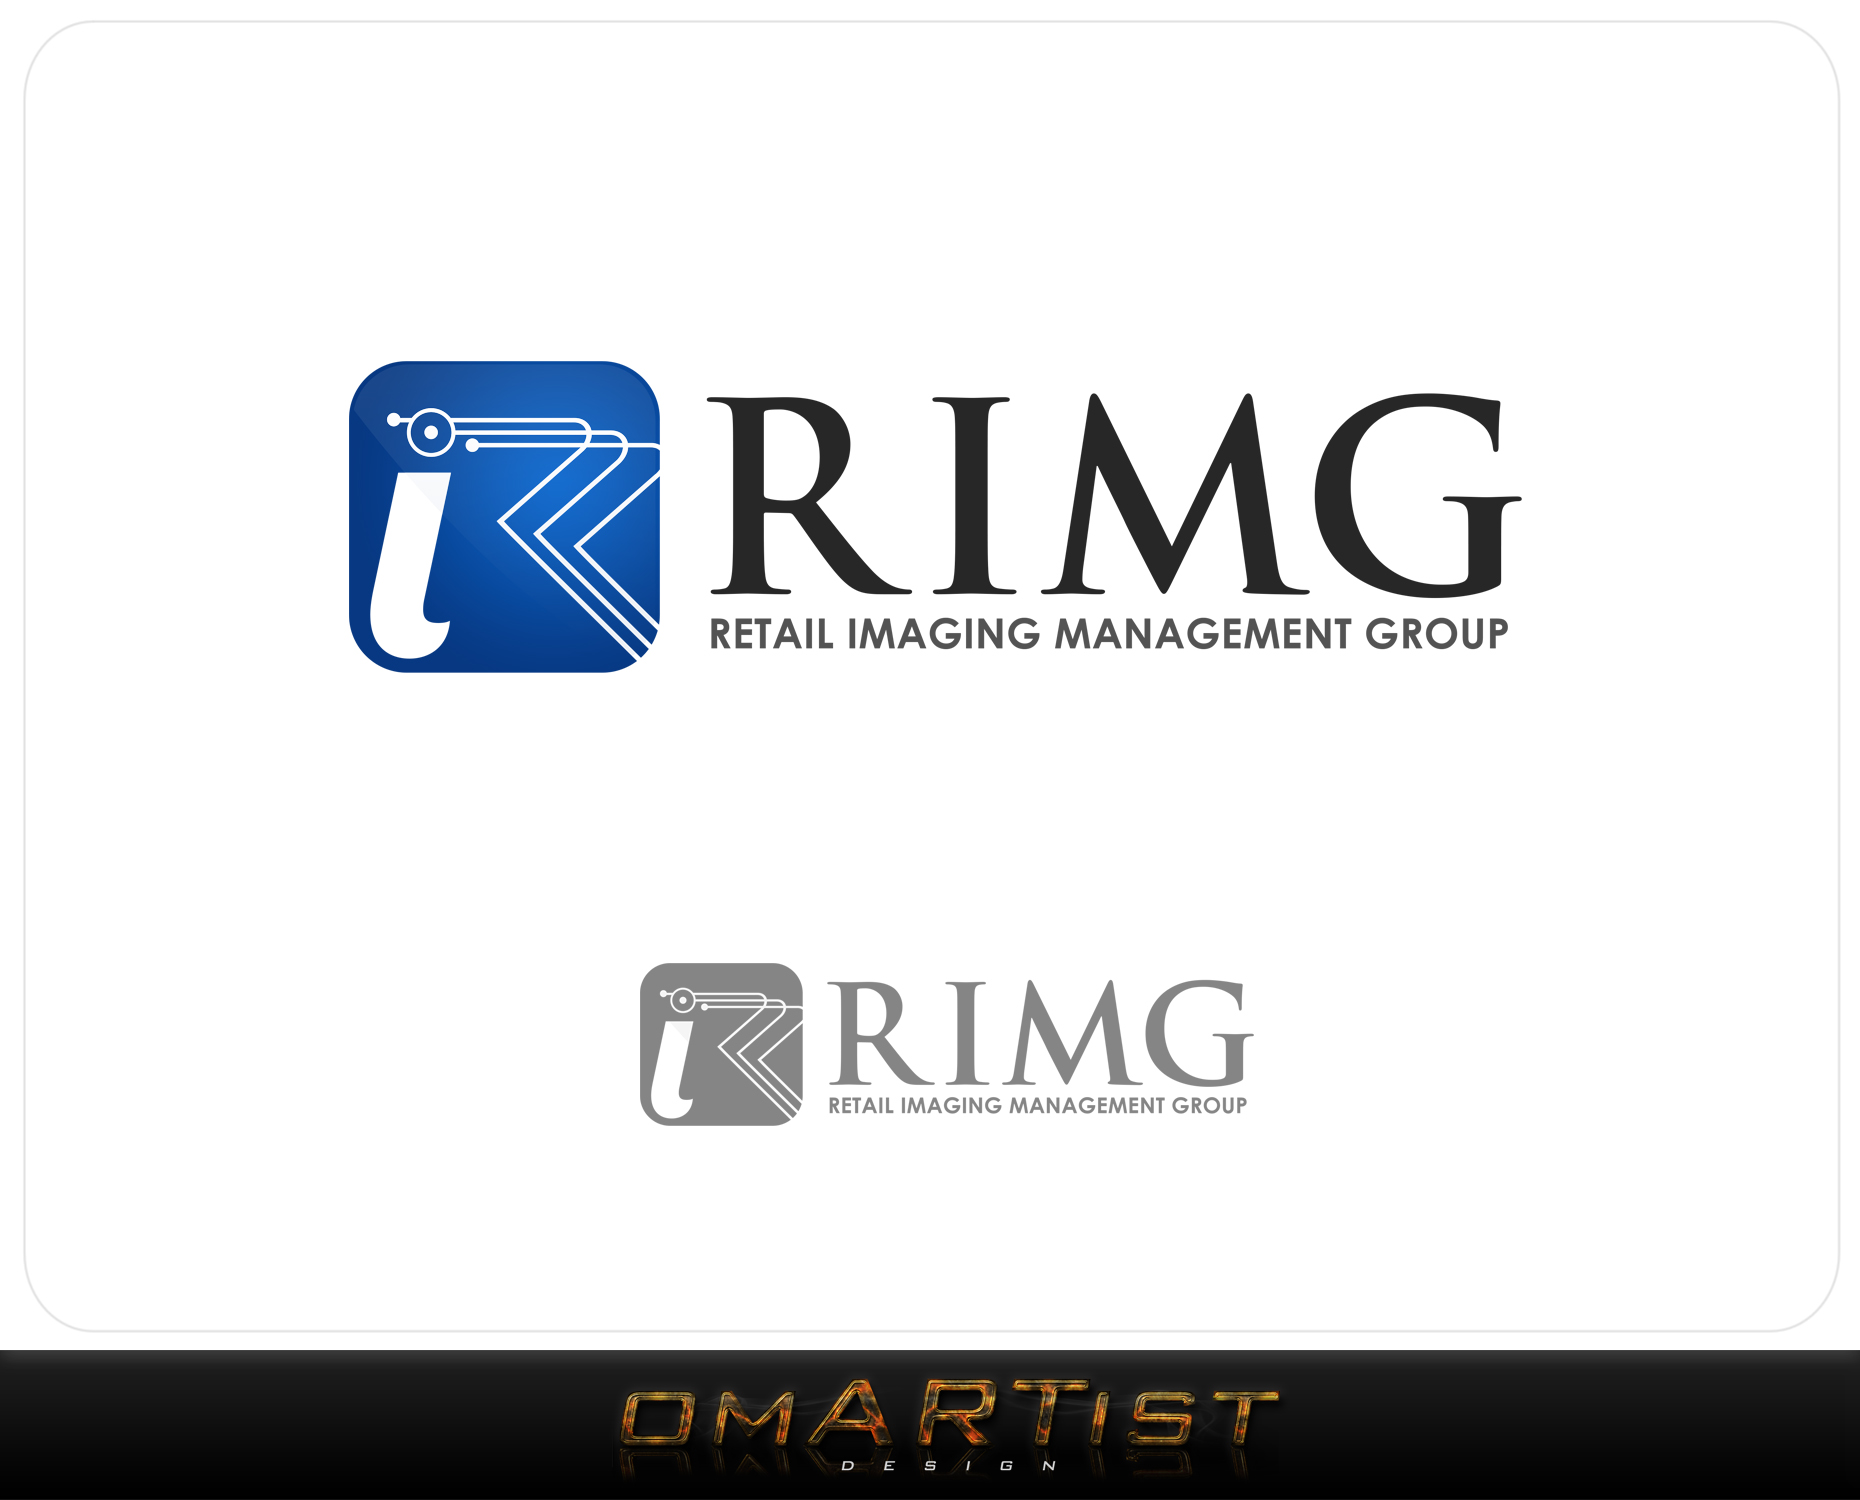 Logo Design by omARTist - Entry No. 120 in the Logo Design Contest Creative Logo Design for Retail Imaging Management Group (R.I.M.G.).